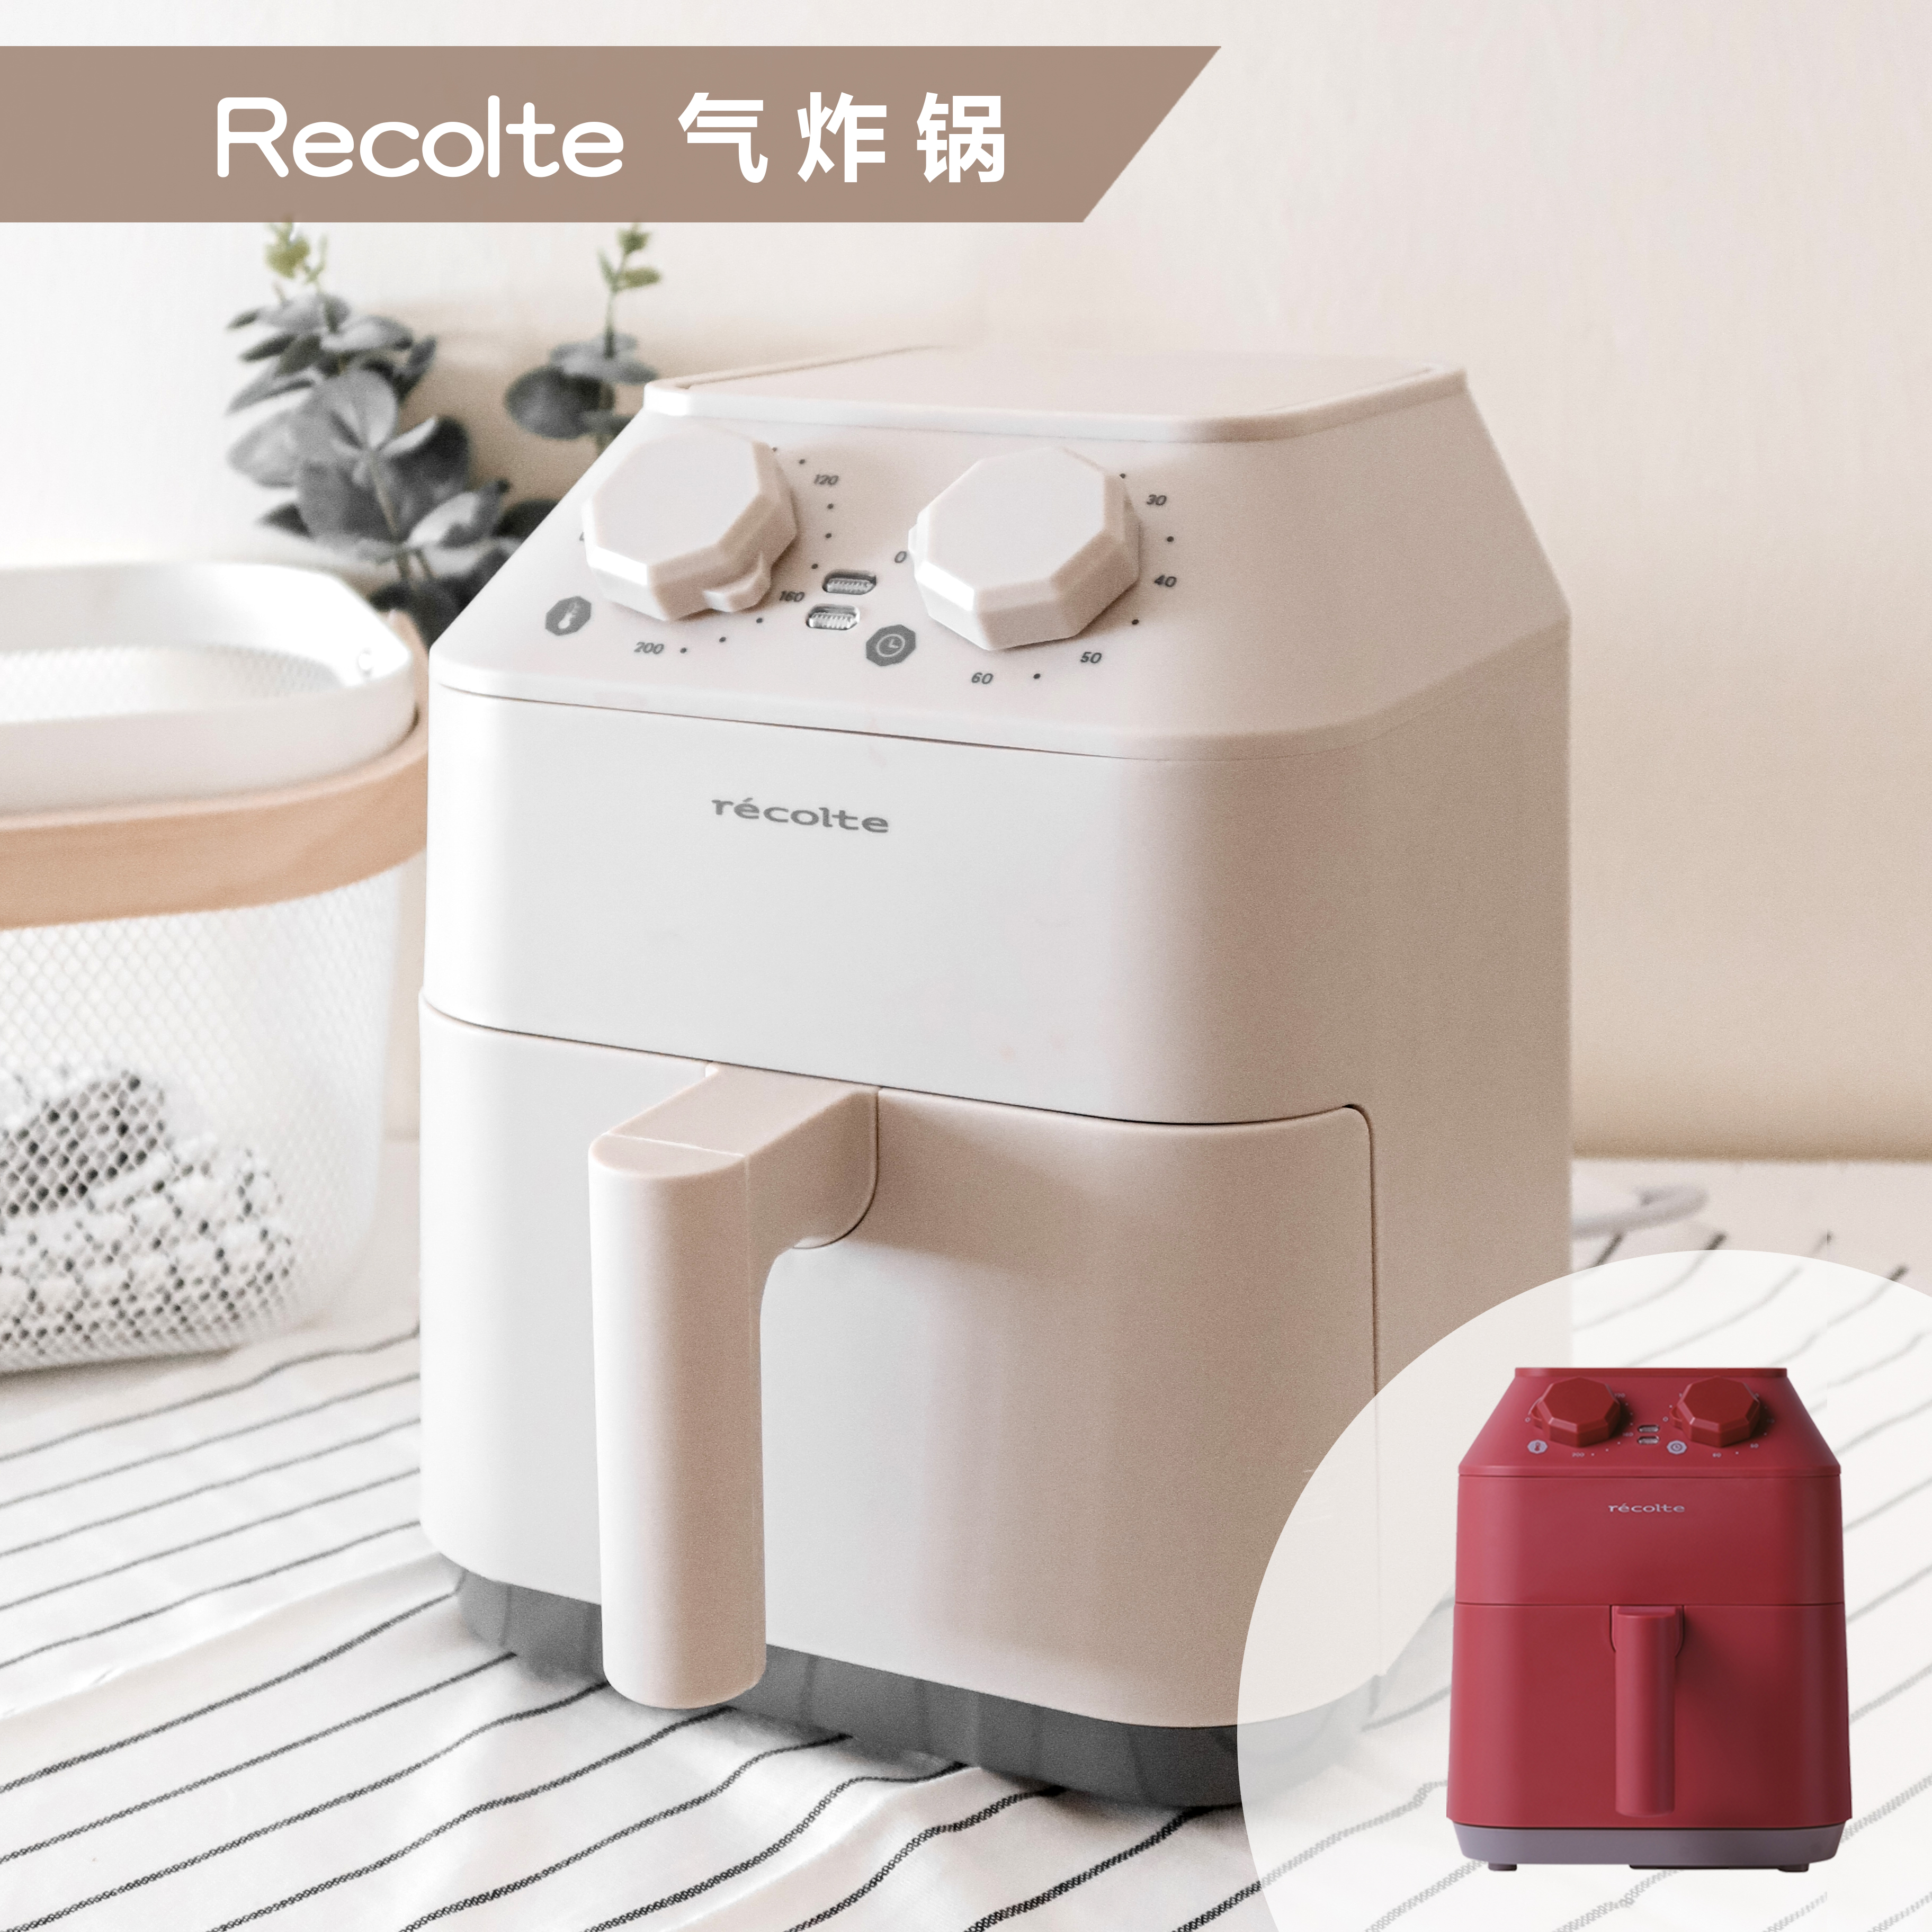 recolte air oven cover.jpg